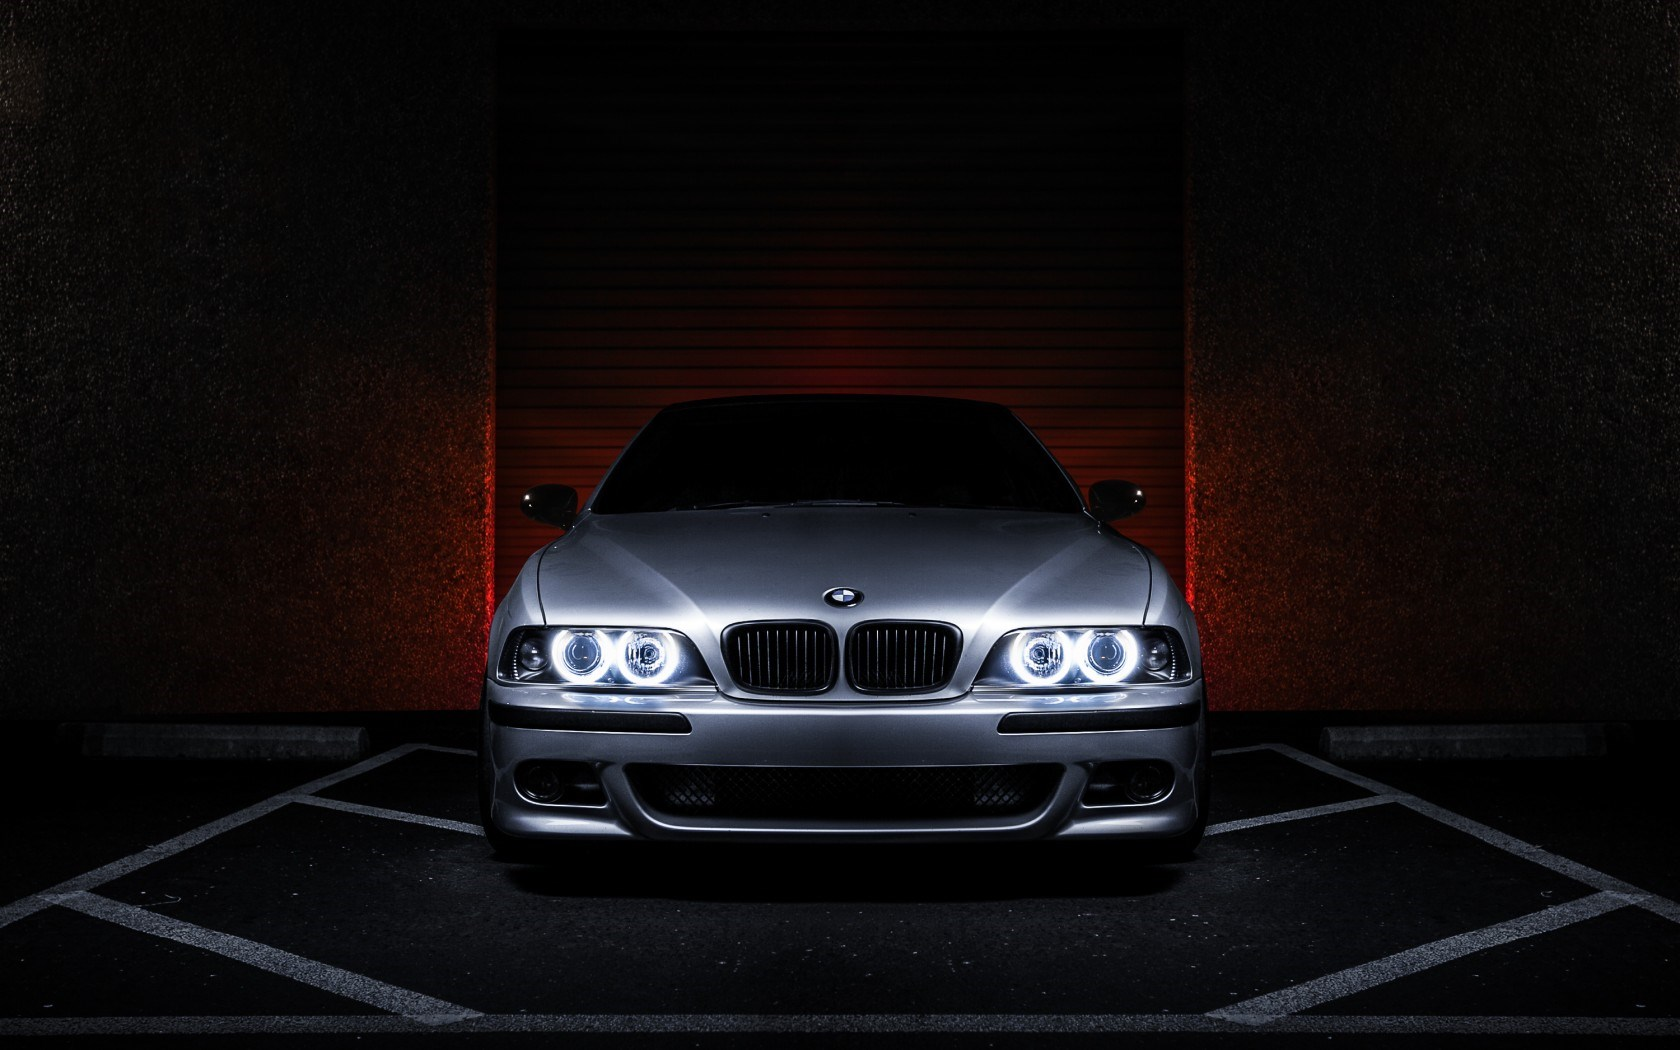 BMW 5 Series E39 540i Car